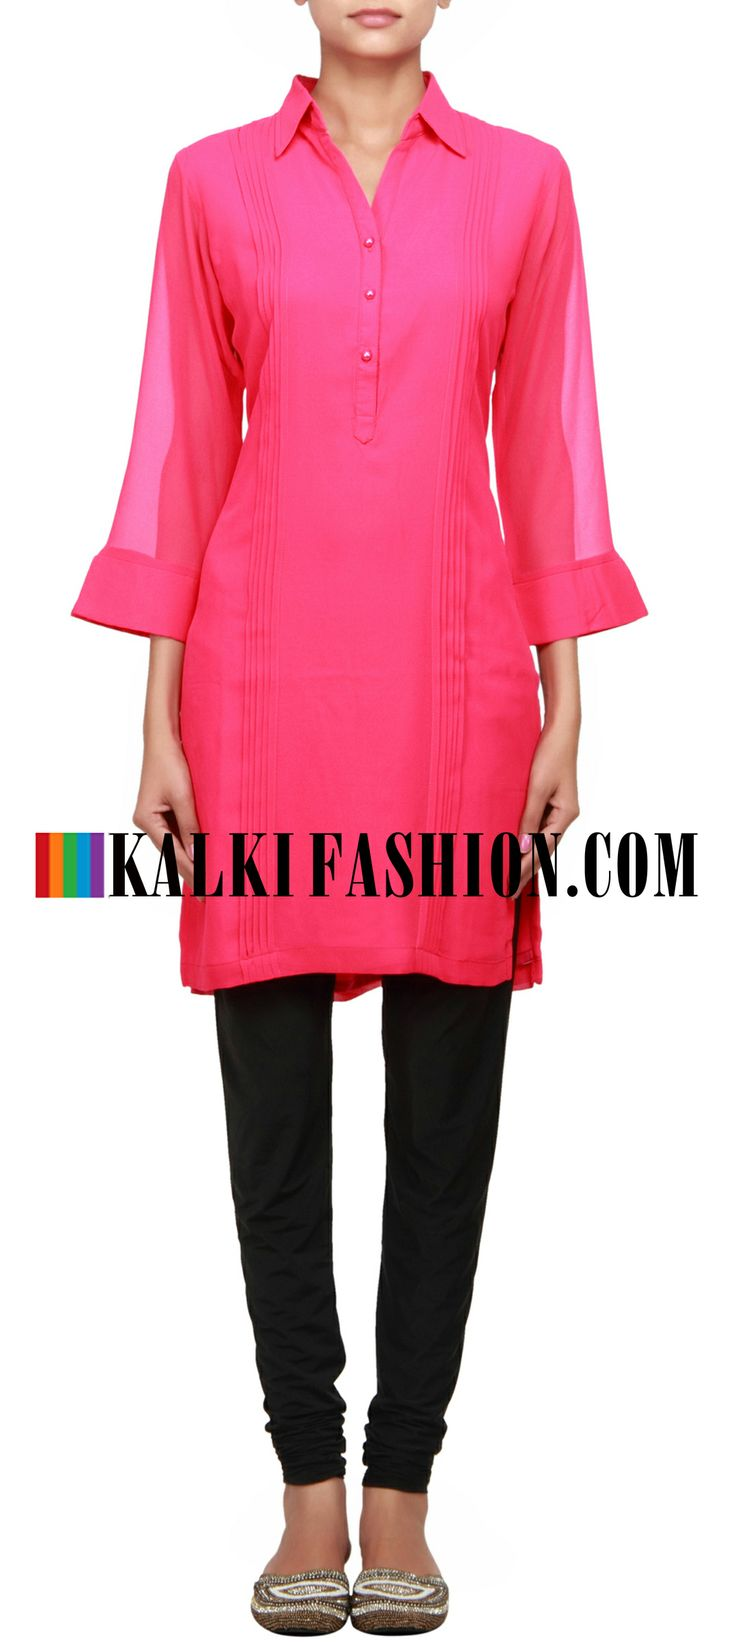 Take xl pink  silk shirt and remove hands and adjust the shoulders to your size and add pink netted cloth and add as hands and attach leftover pink cloth to the bottom of hands.